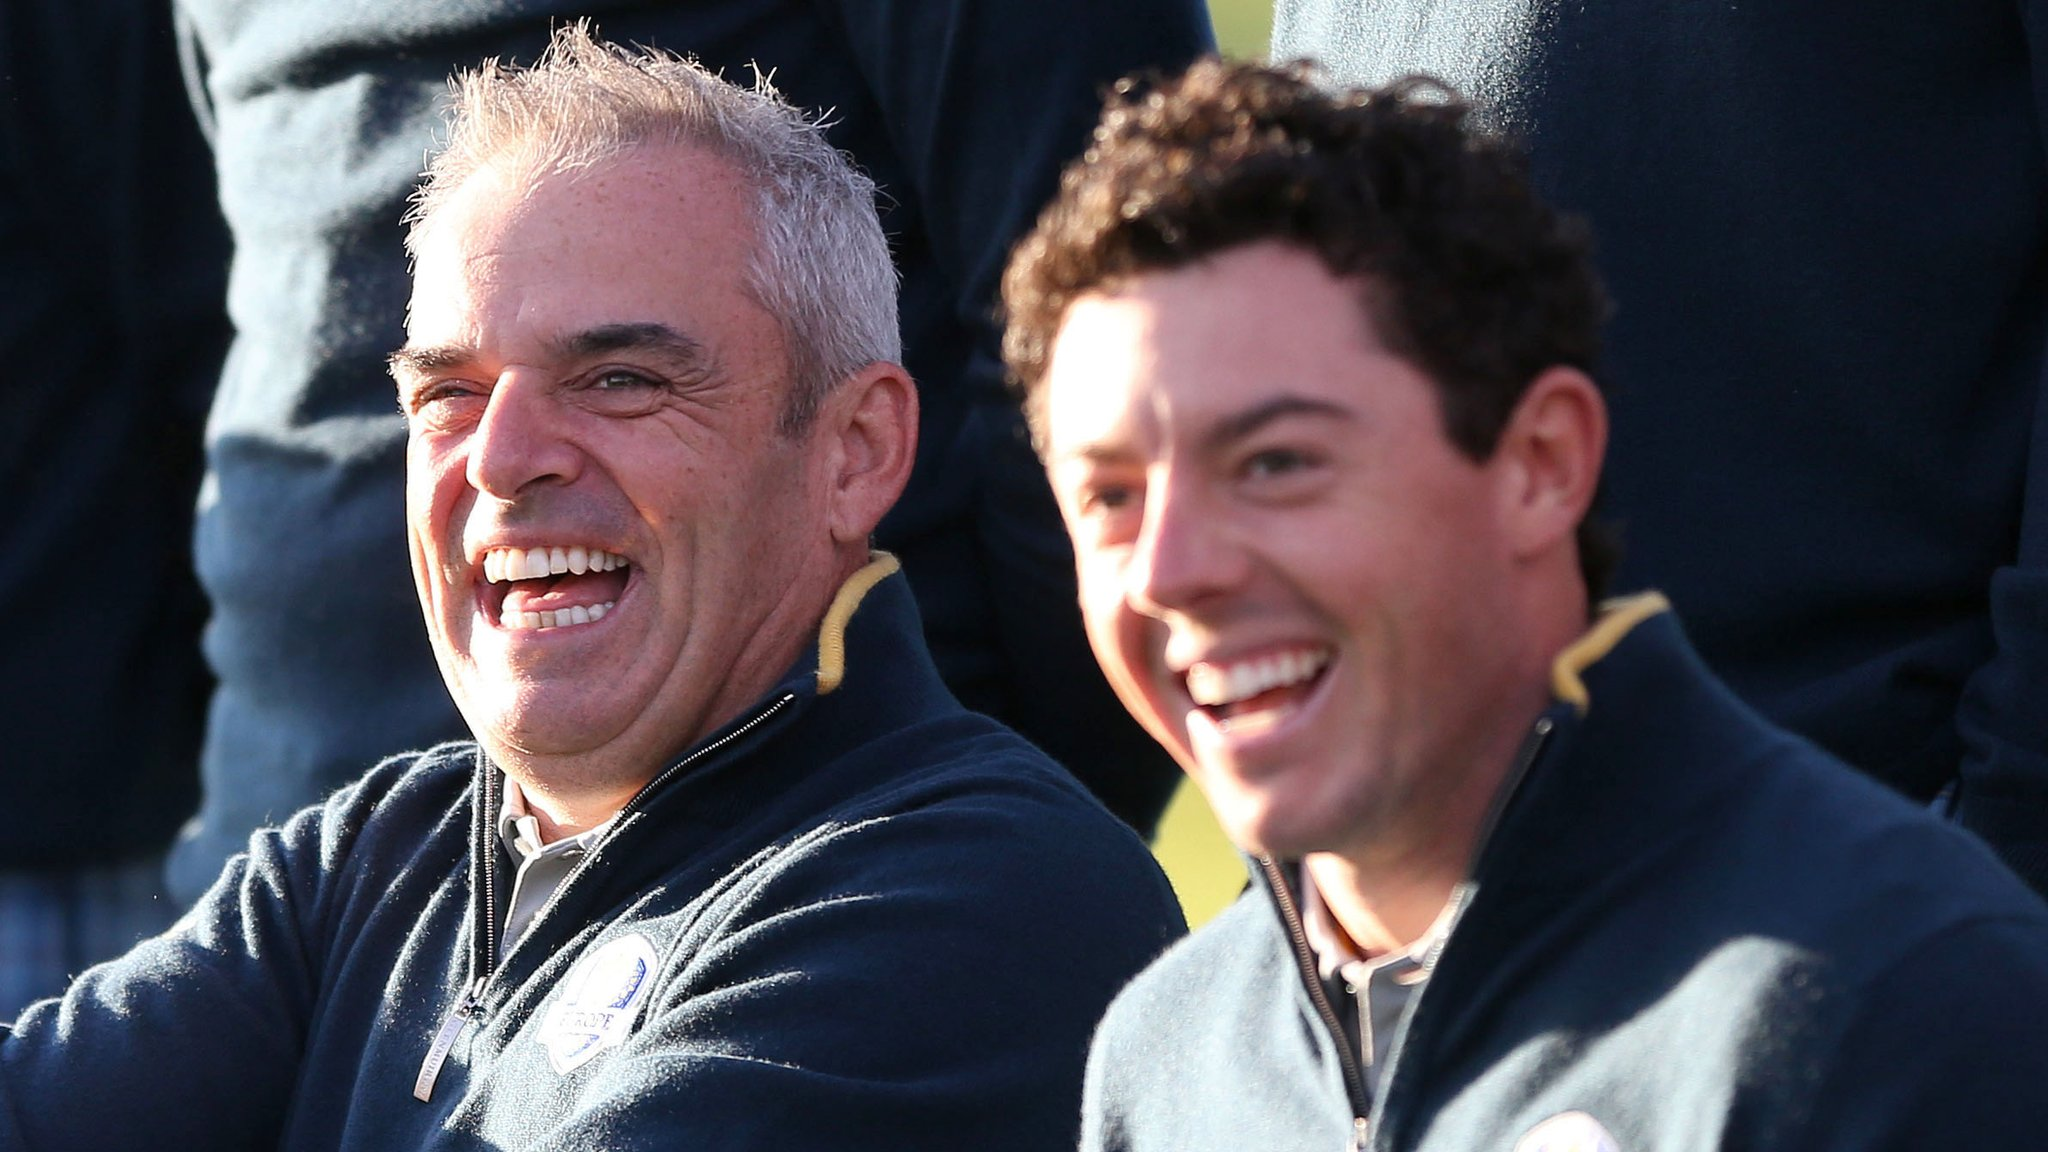 It's very disappointing' - McGinley baffled by McIlroy Tour plans